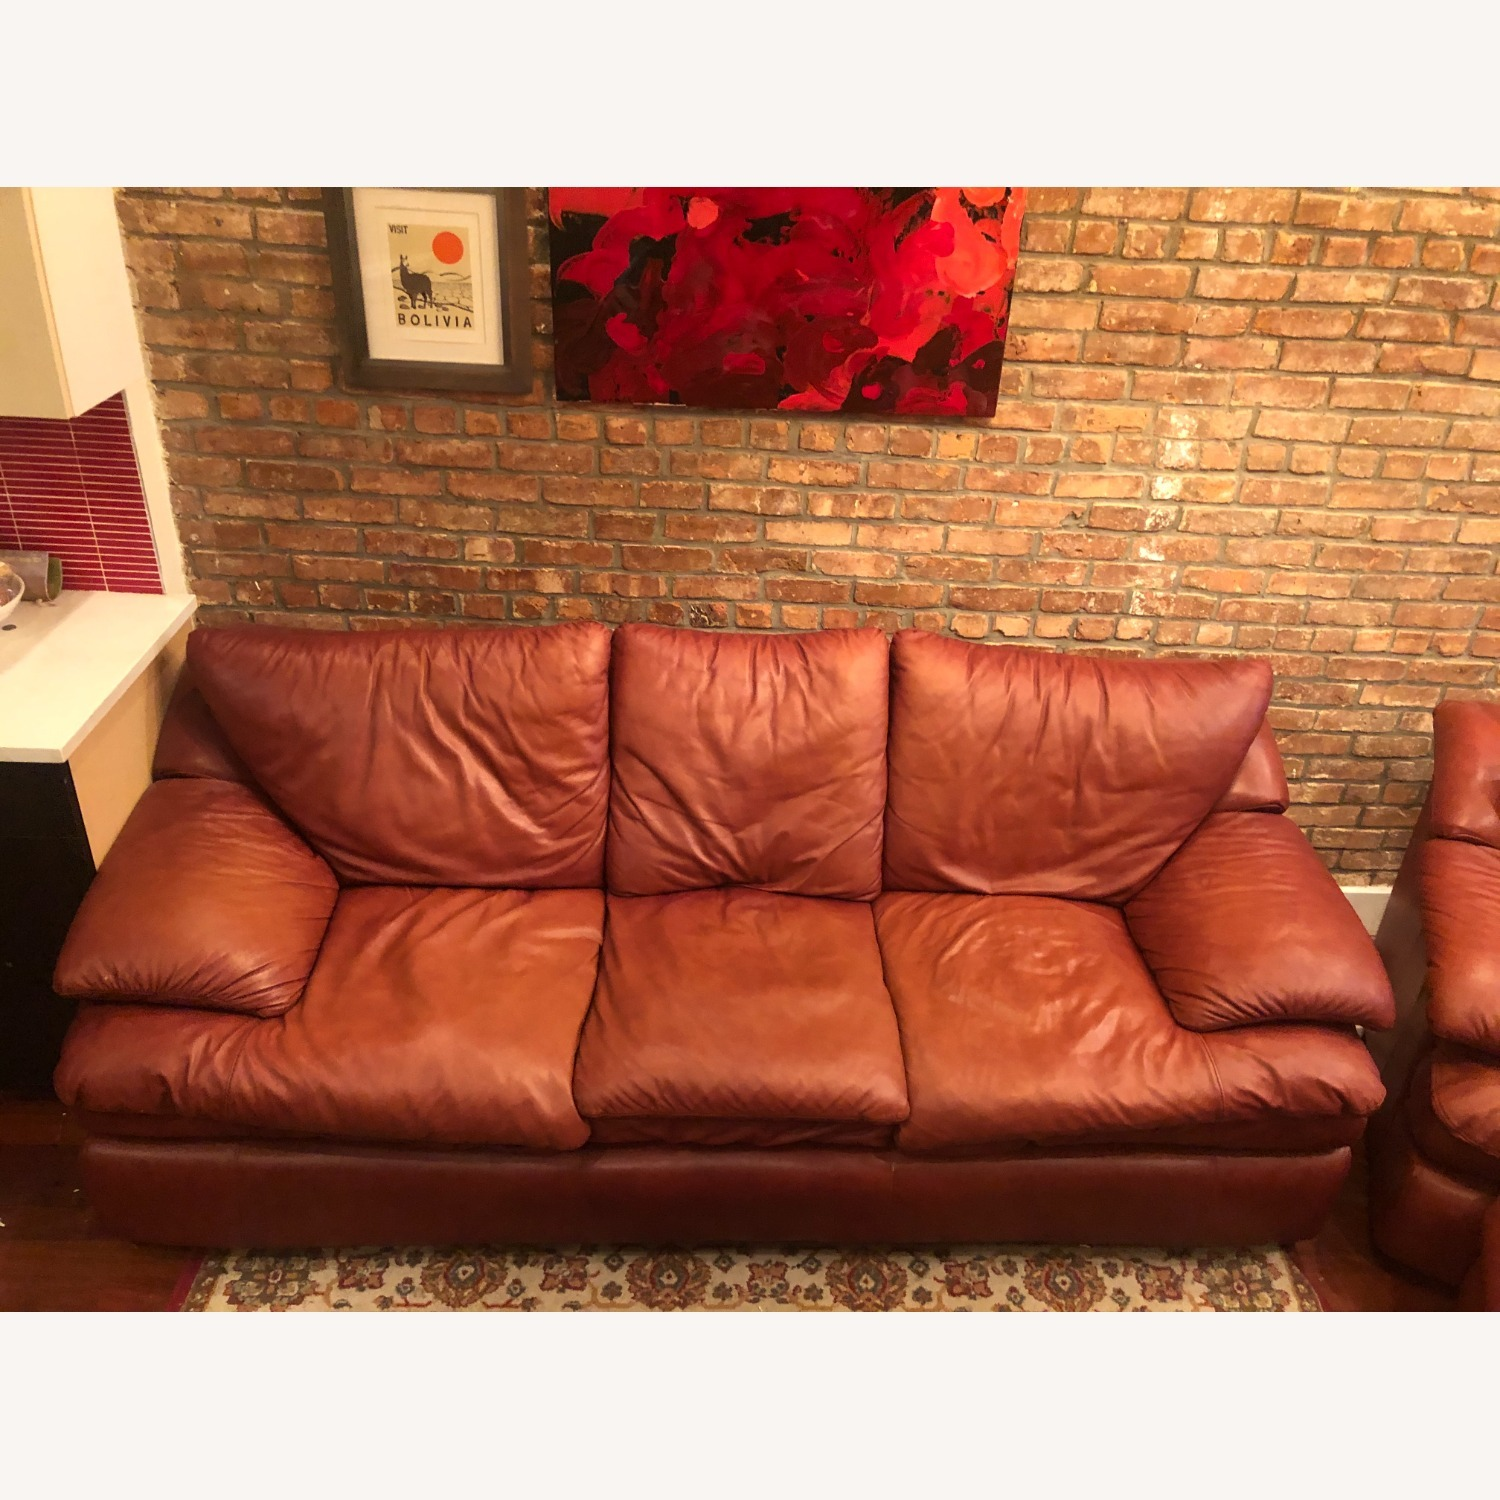 Brown Leather Livingston Sofa Bed - image-2